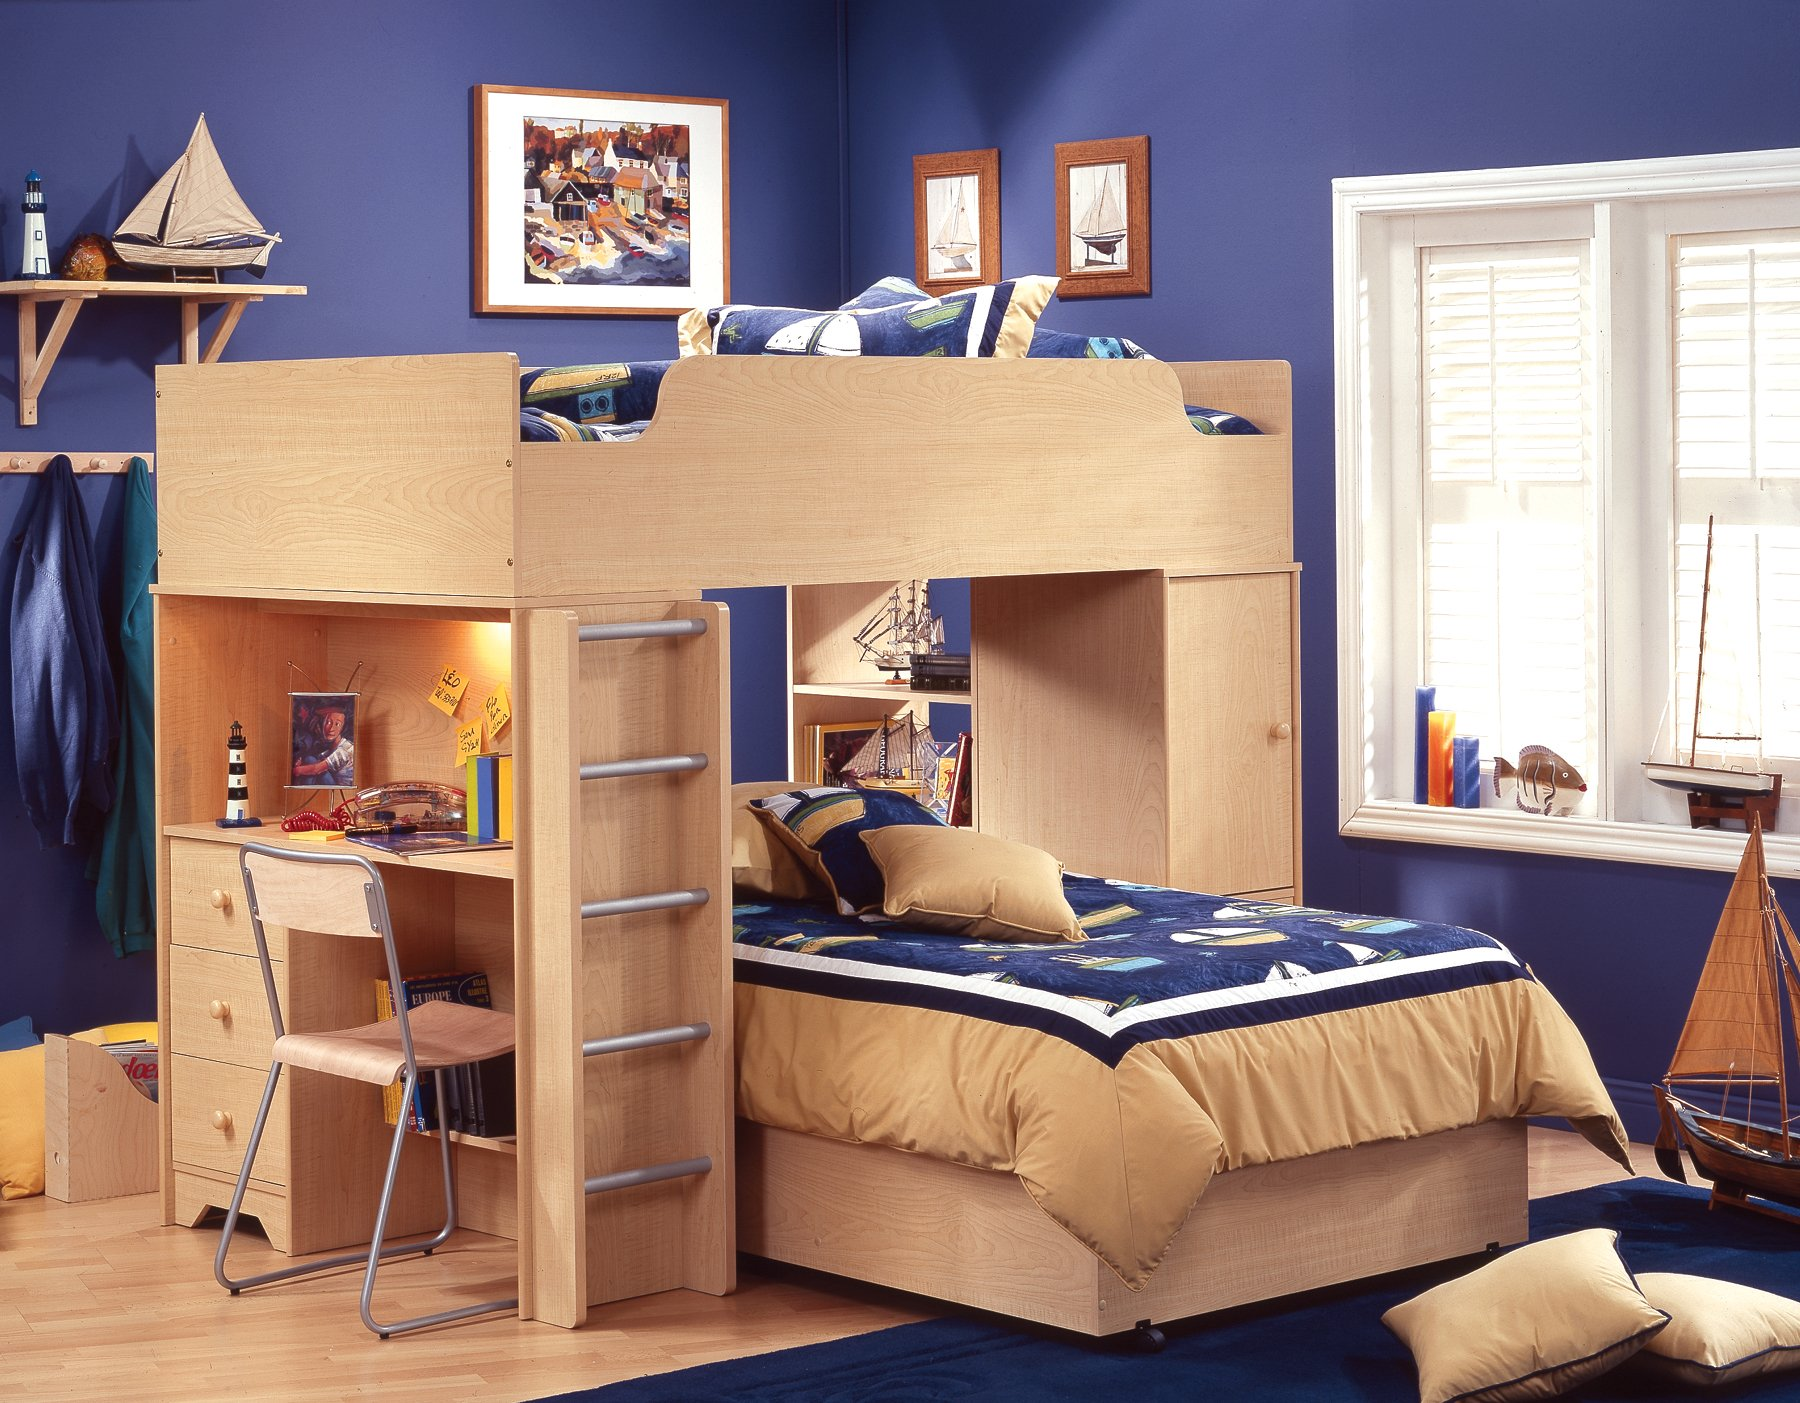 efficient space saving furniture for kids rooms tumidei spa 6 12